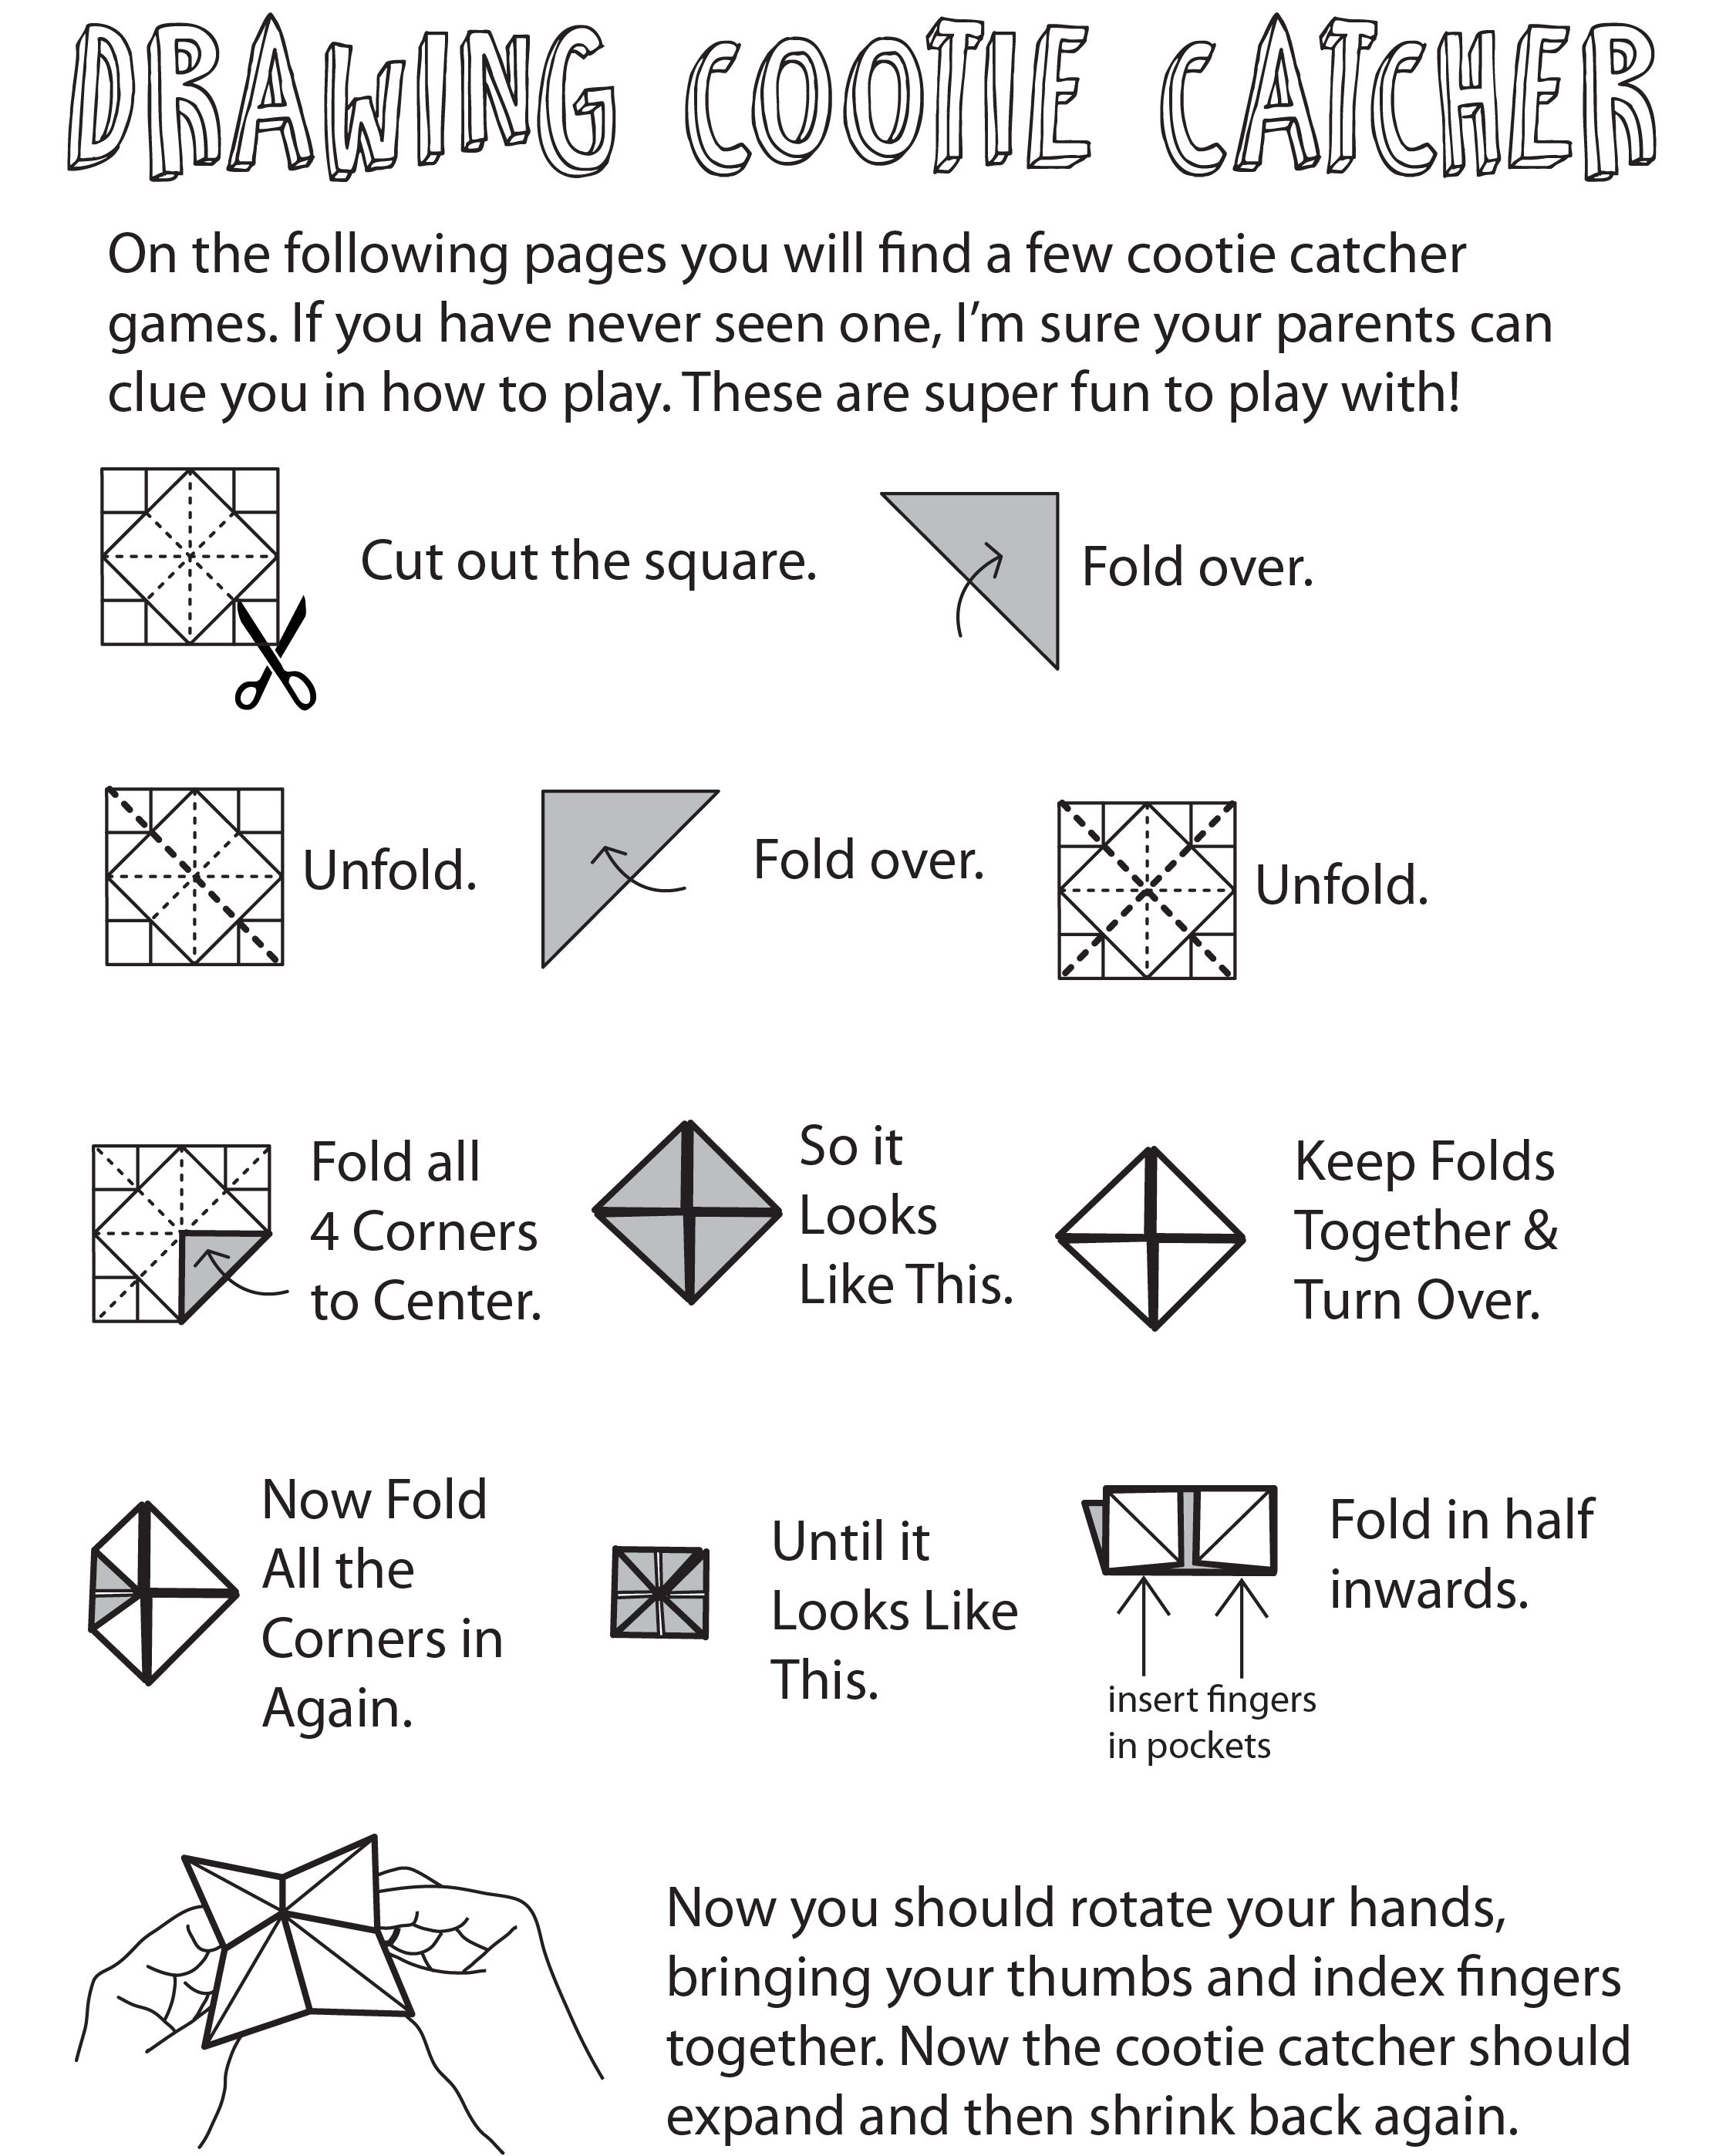 How To Play The Cootie Catcher Drawing Game Fun For Kids Who Love To Draw Step By Step Instructions Cootie Catcher Drawing Games How To Draw Steps